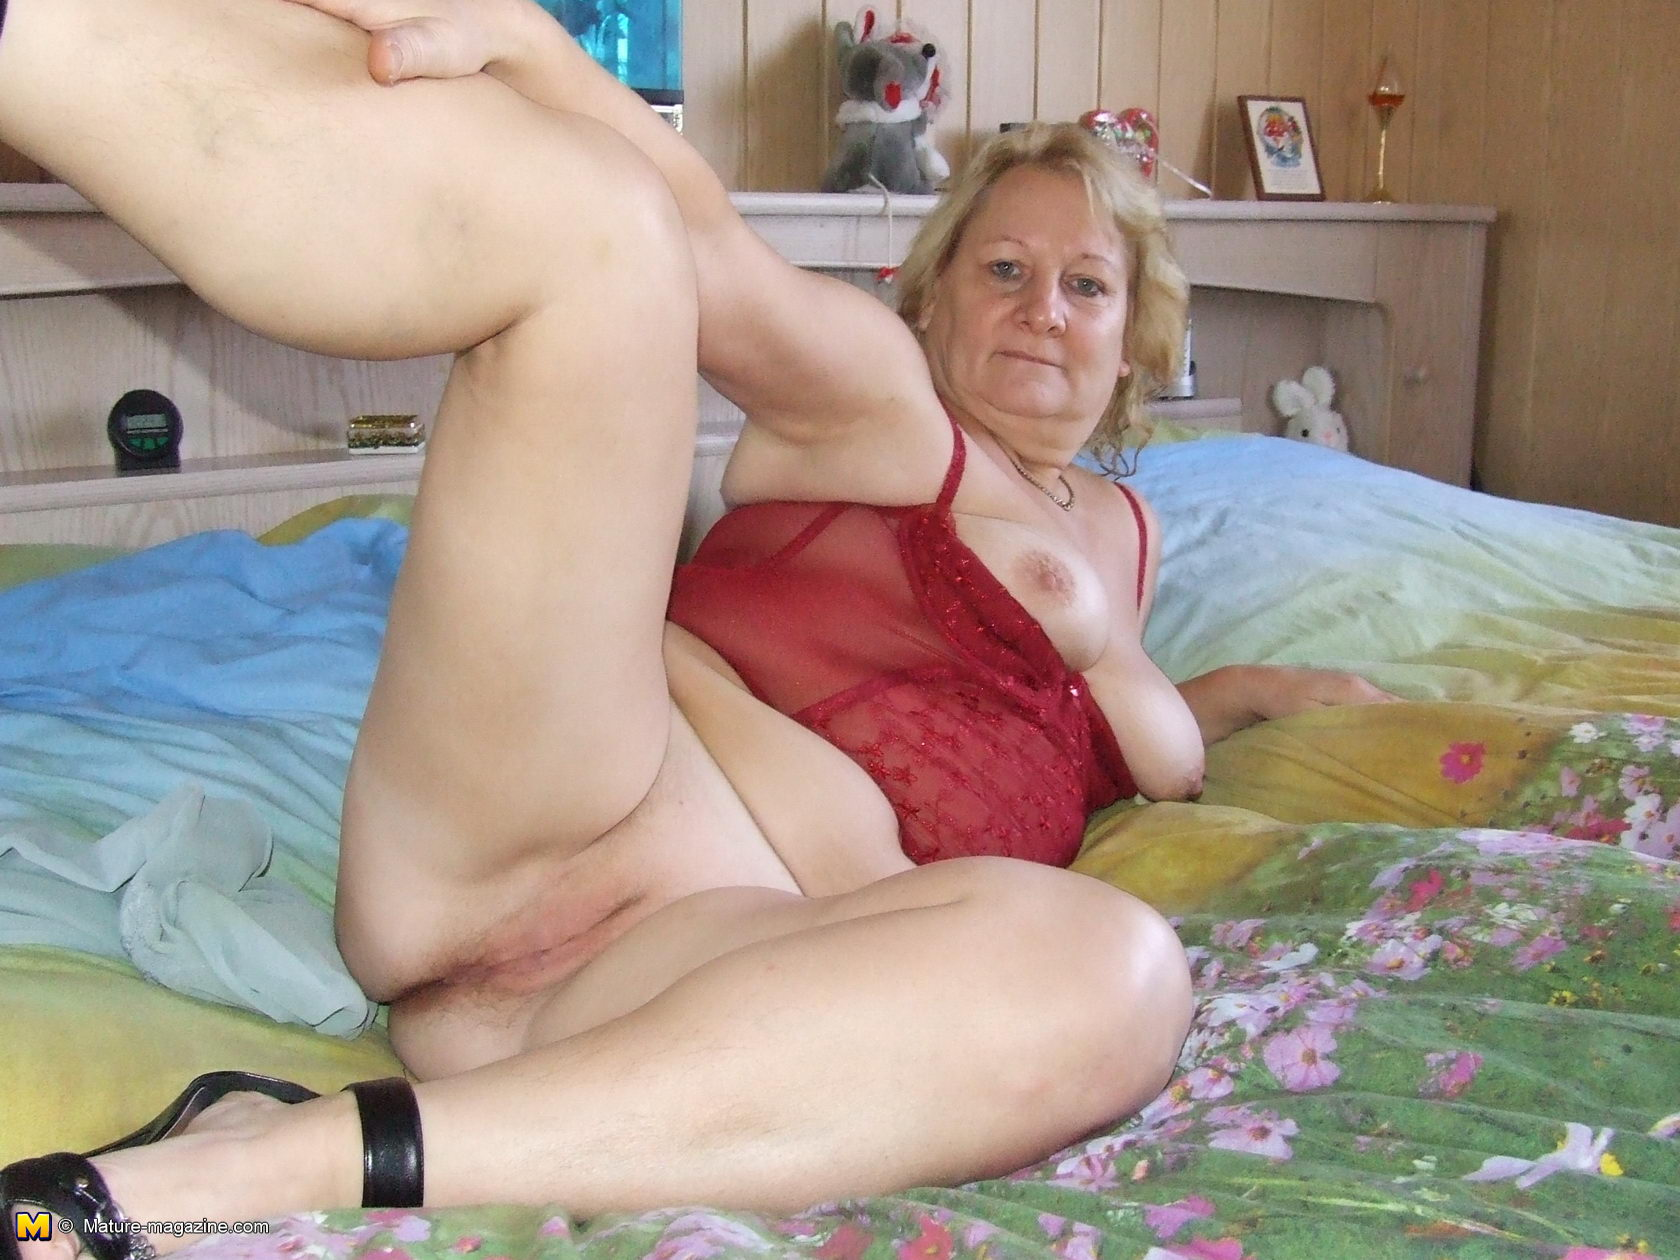 All Granny Porn mature rosi loves to get naked and show us all - granny nu